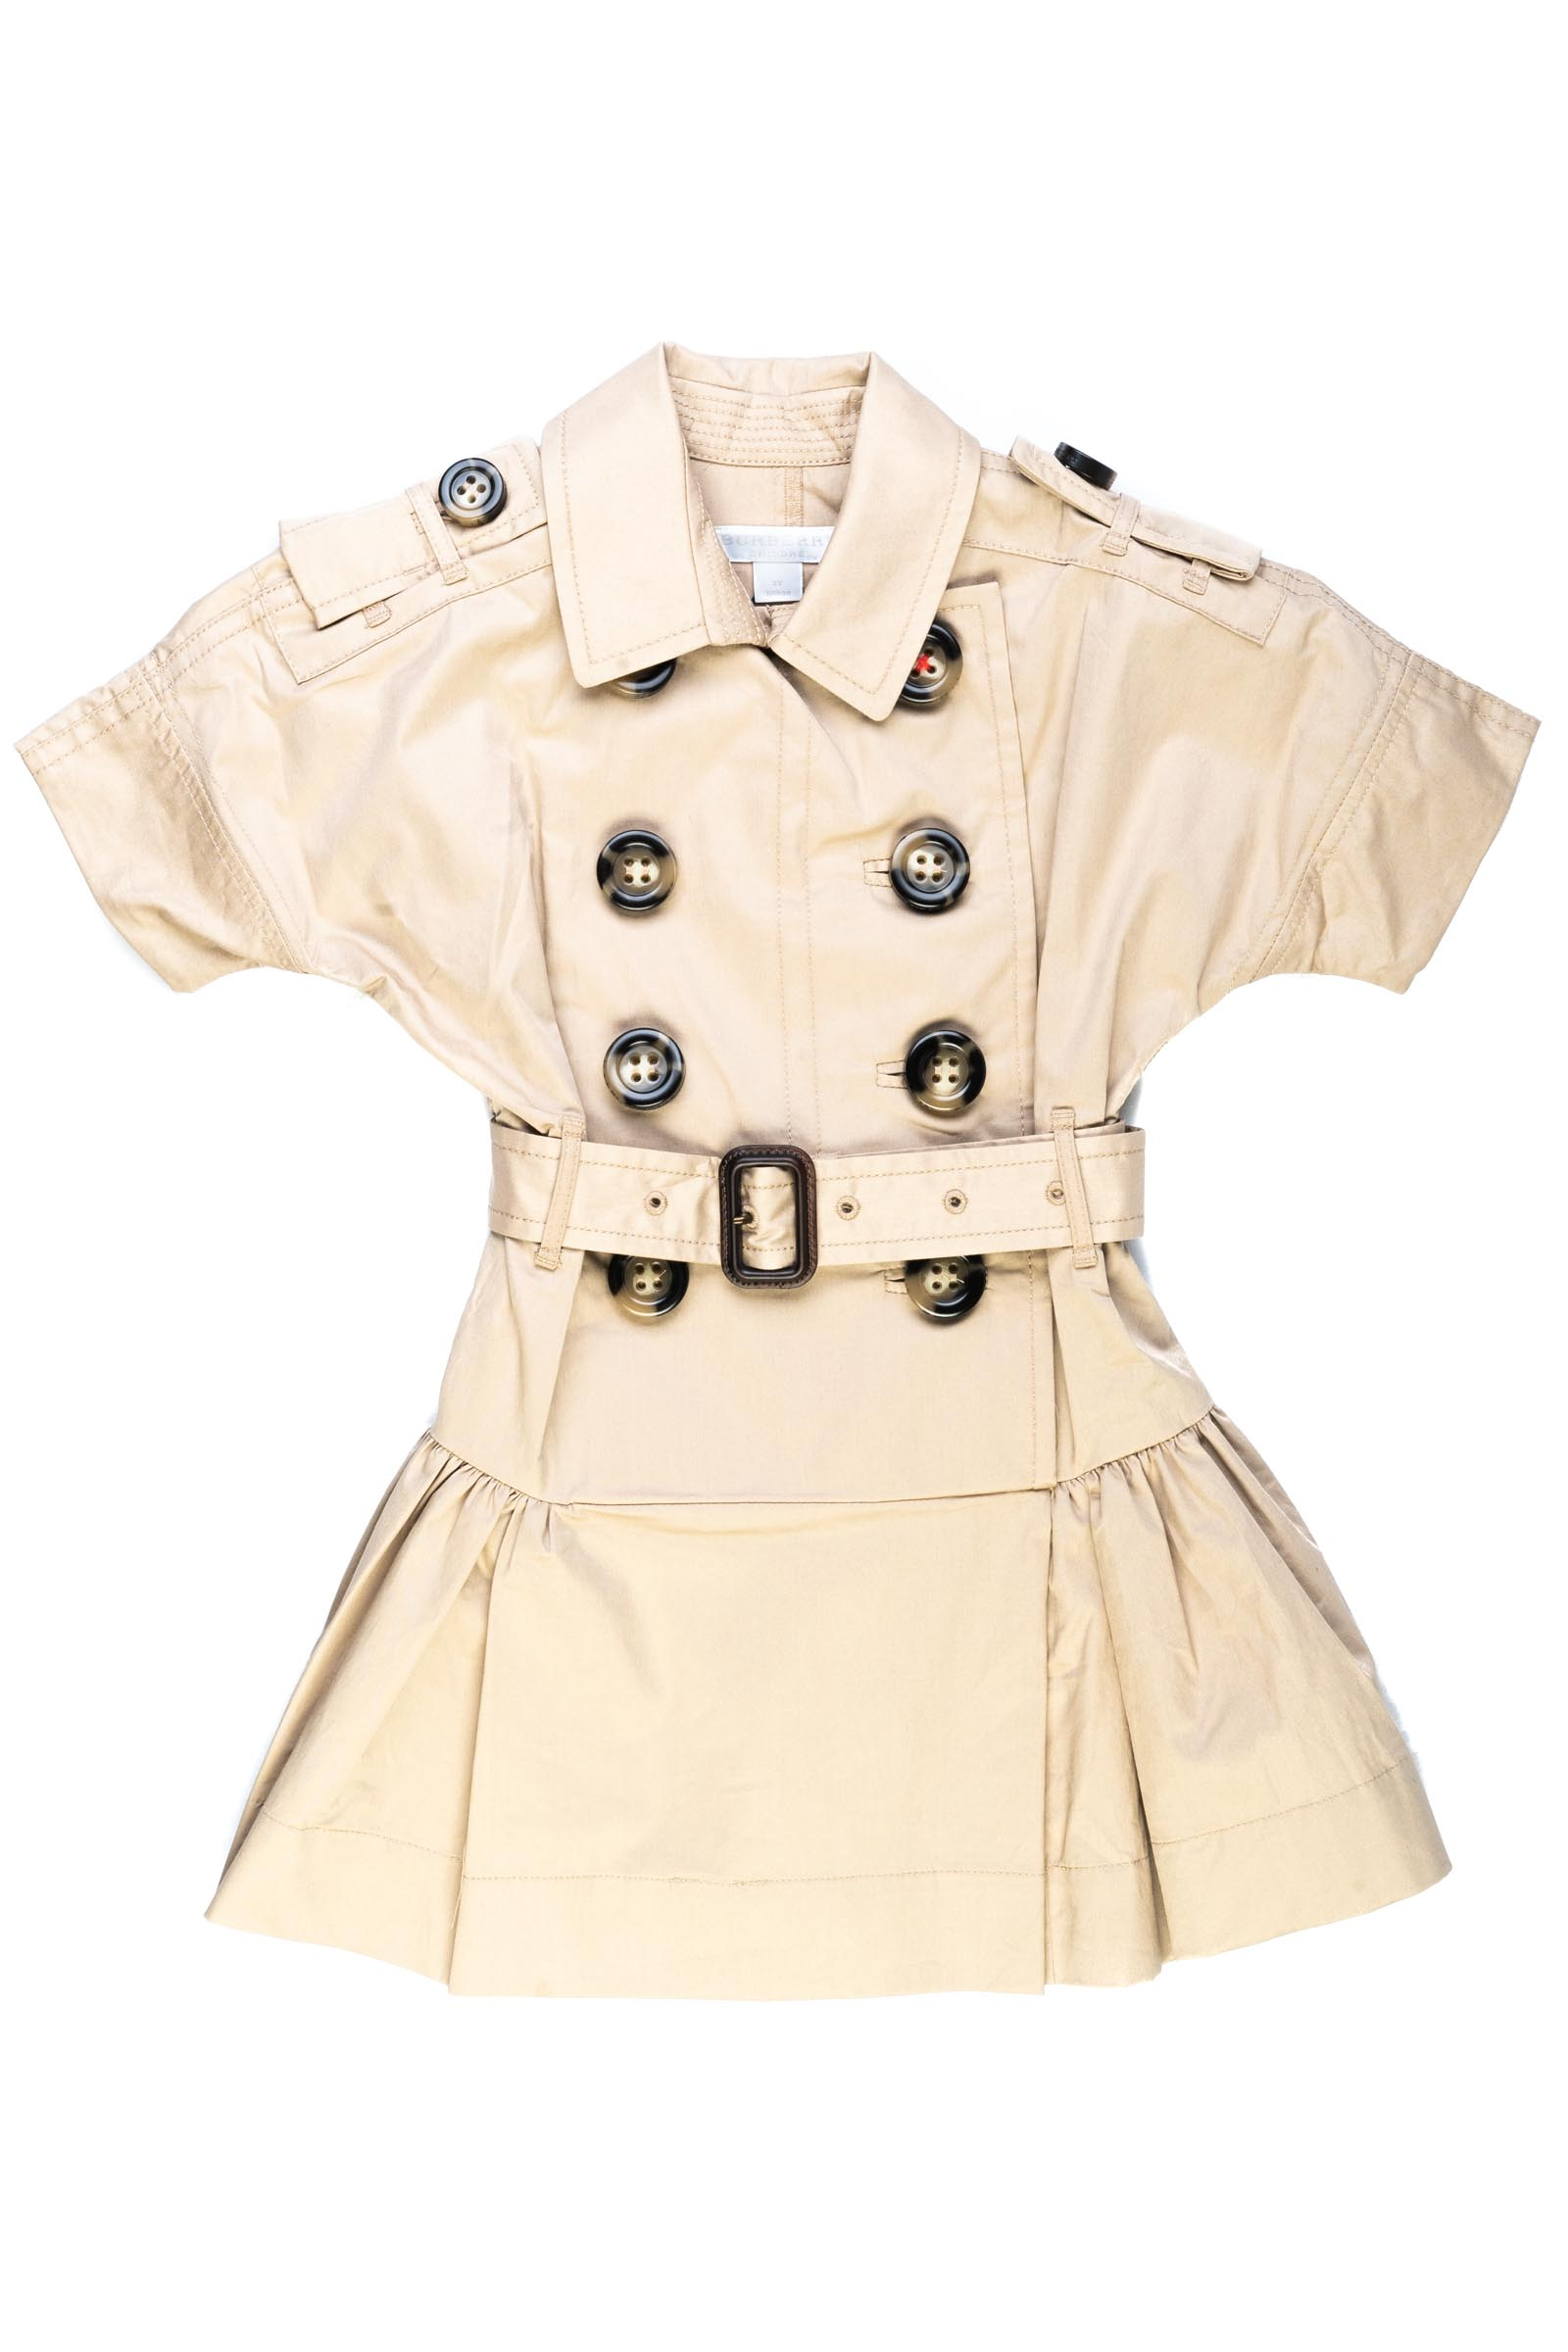 TRENCH BURBERRY KIDS BURBERRY KIDS Piccolo Lord 1996